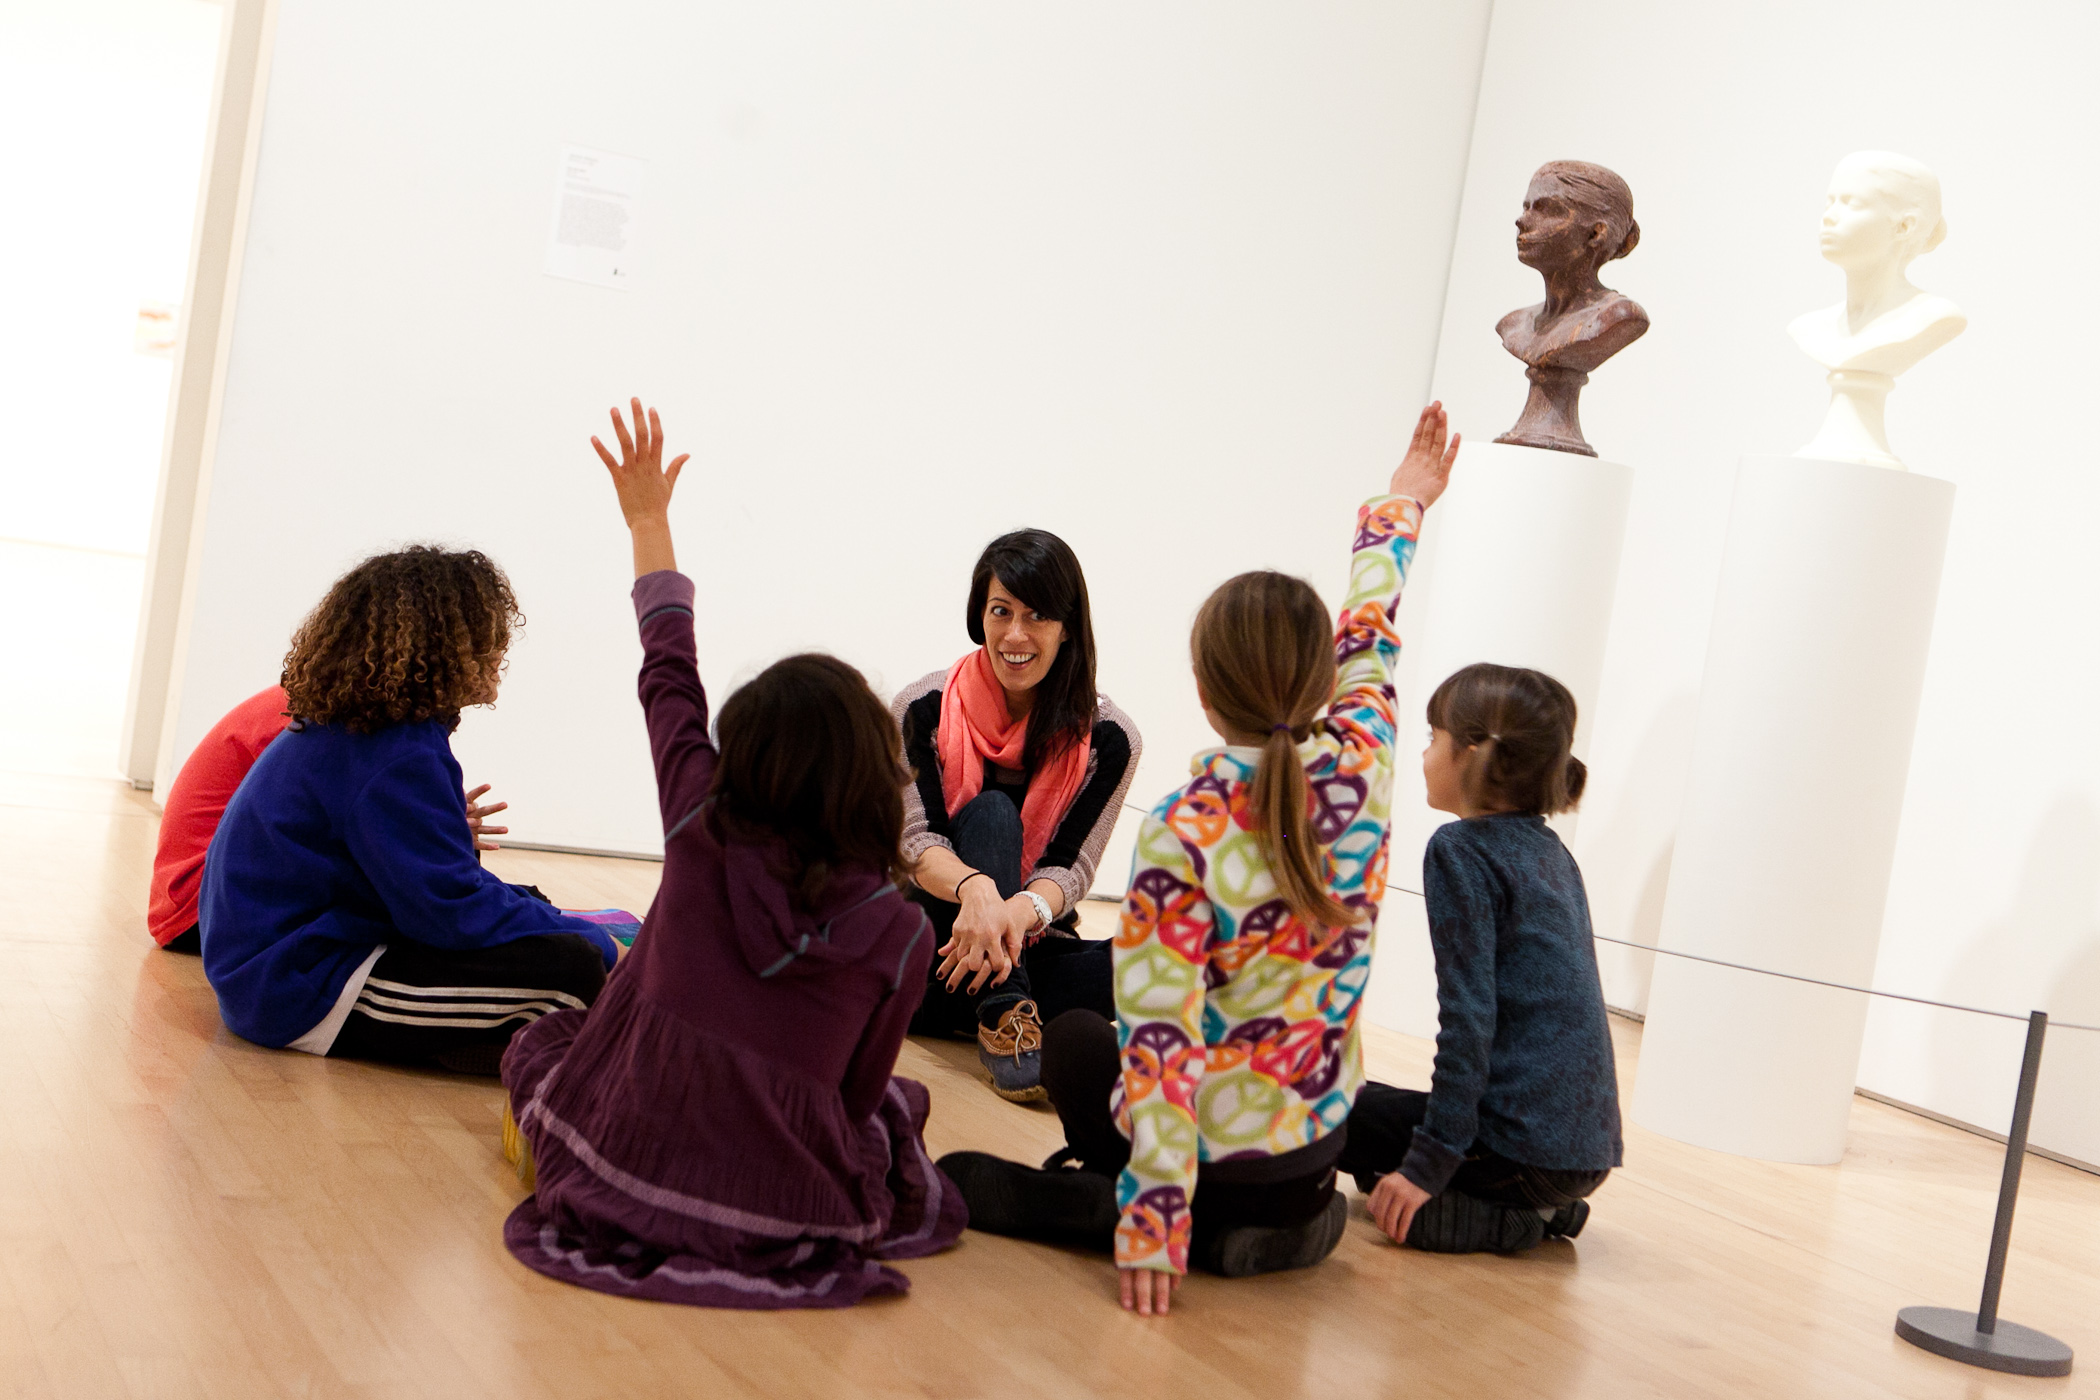 Children and a docent sitting on the floor of a gallery